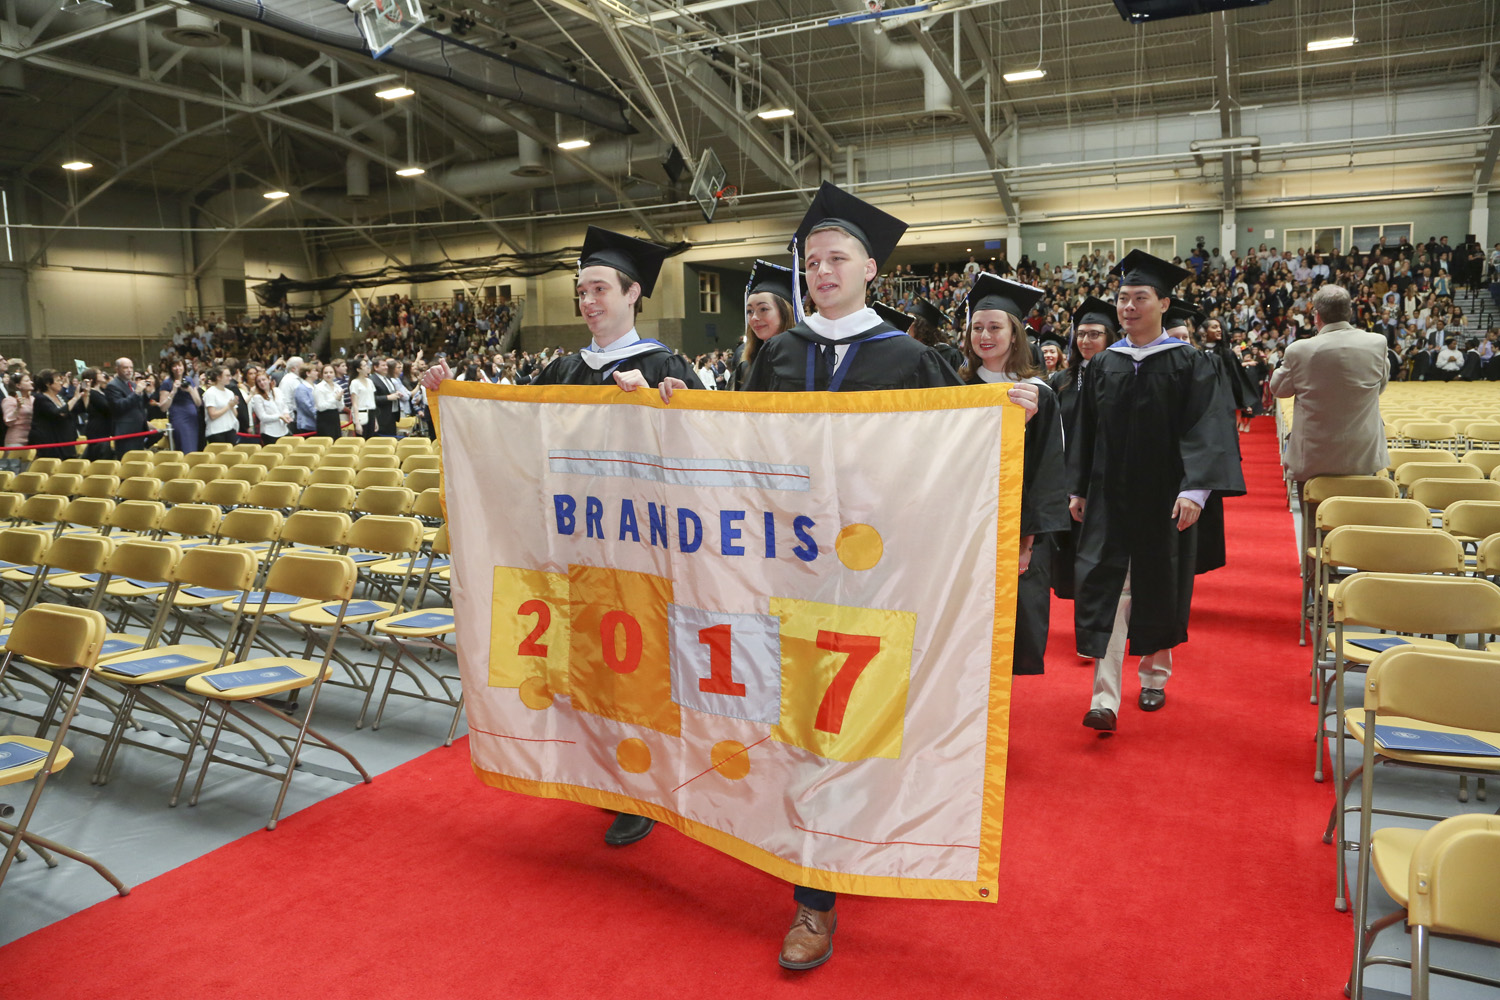 students in caps and gowns, holding a Brandeis 2017 banner, marching into Gosman Center for Commencement